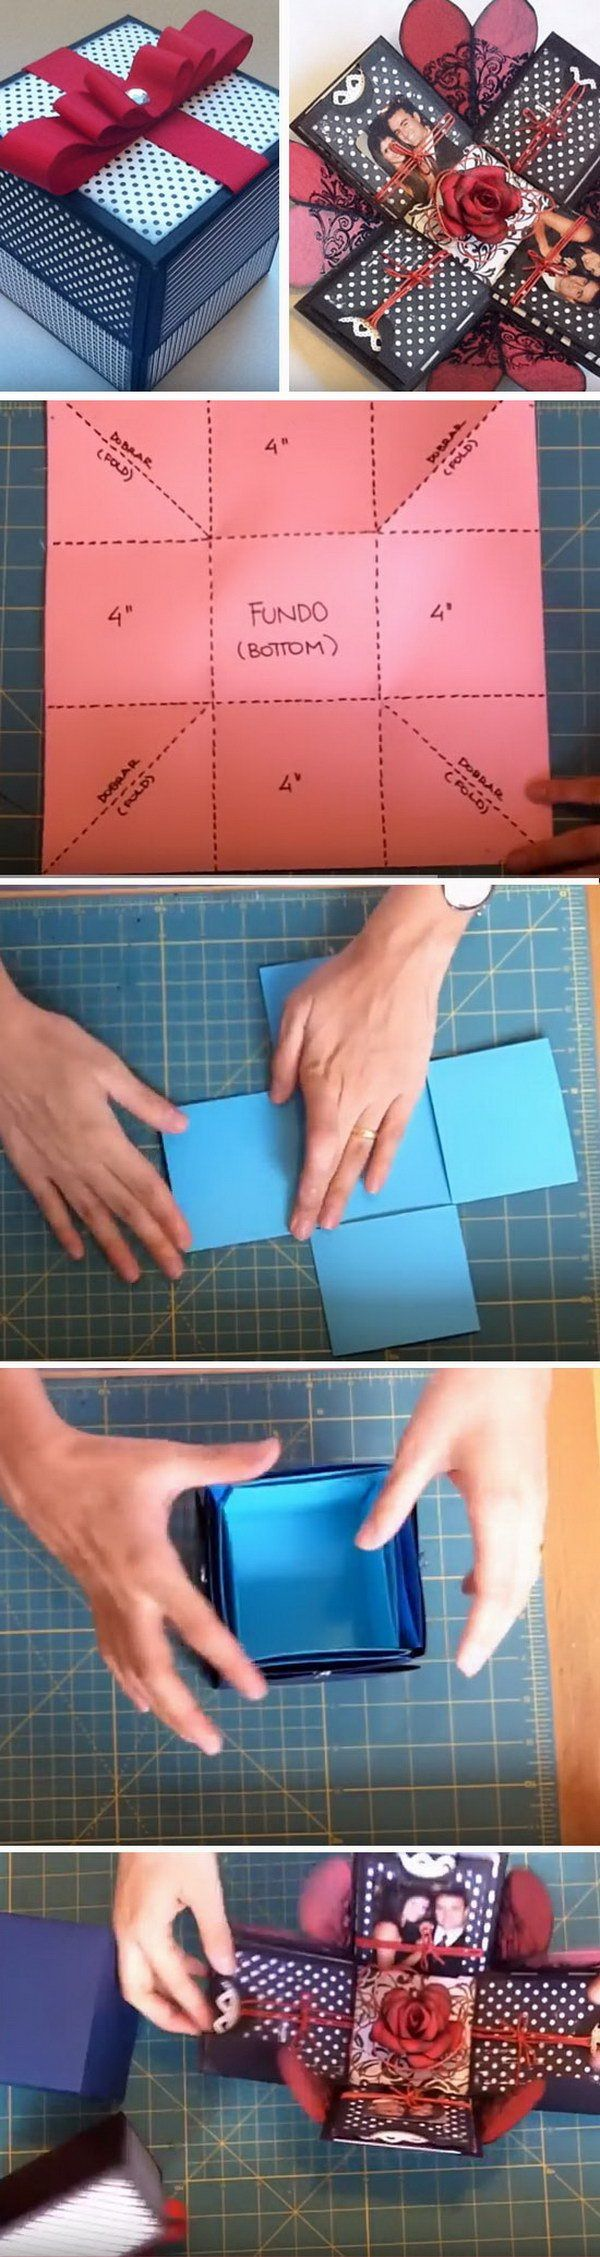 Easy diy valentines day gifts for boyfriend box tops gift money explosion box diy christmas gifts for men easy holiday gift ideas for him solutioingenieria Gallery